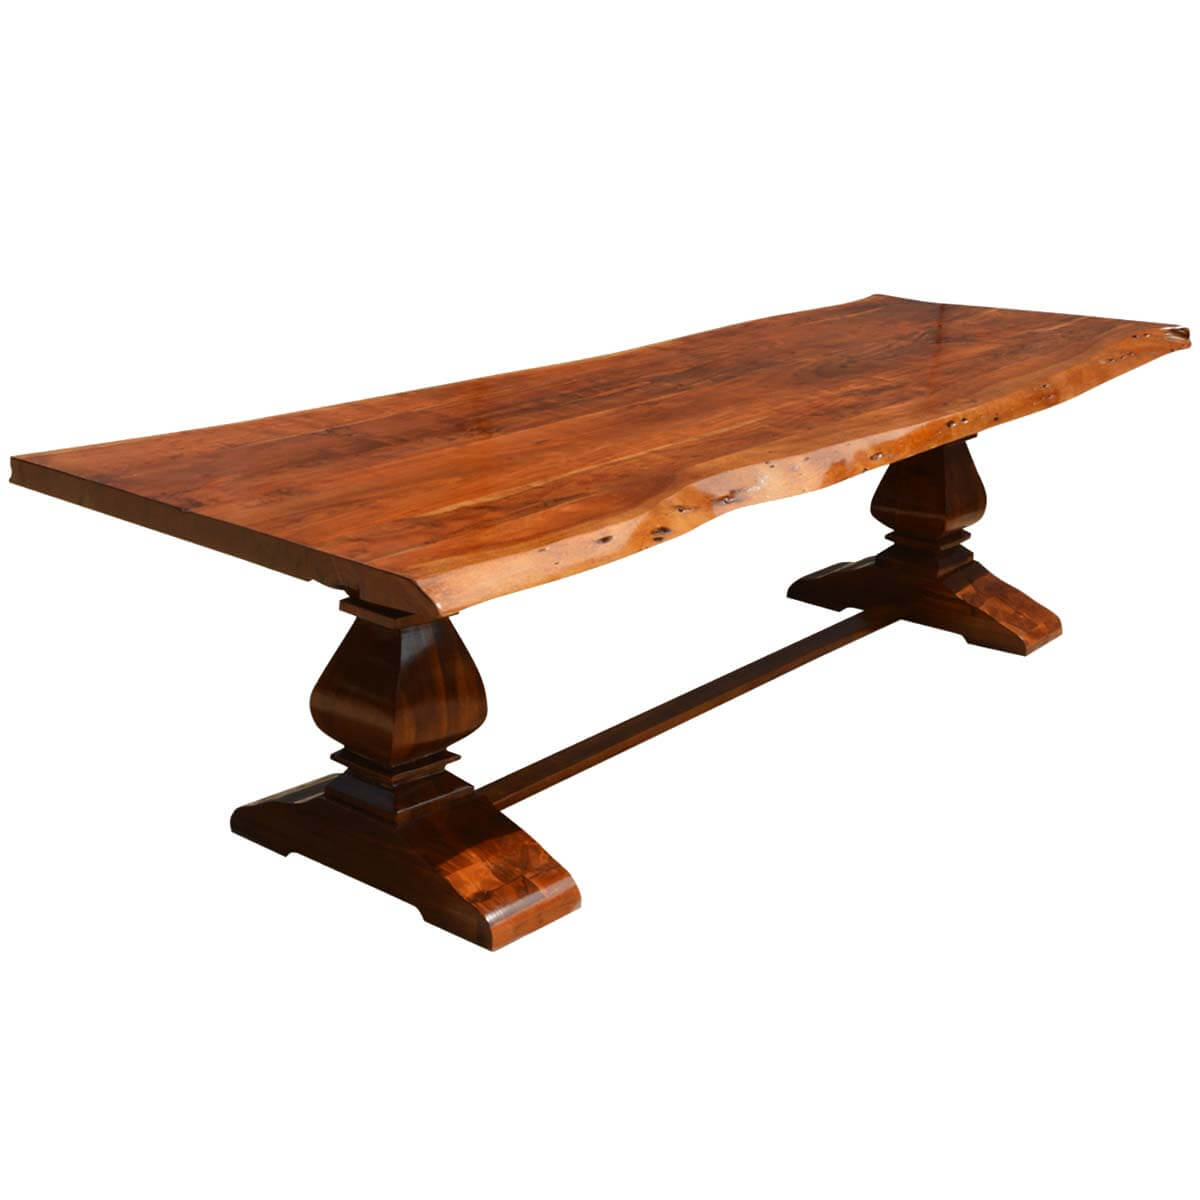 Live Edge Acacia Wood Trestle Dining Table : 7391 from www.sierralivingconcepts.com size 1200 x 1200 jpeg 72kB